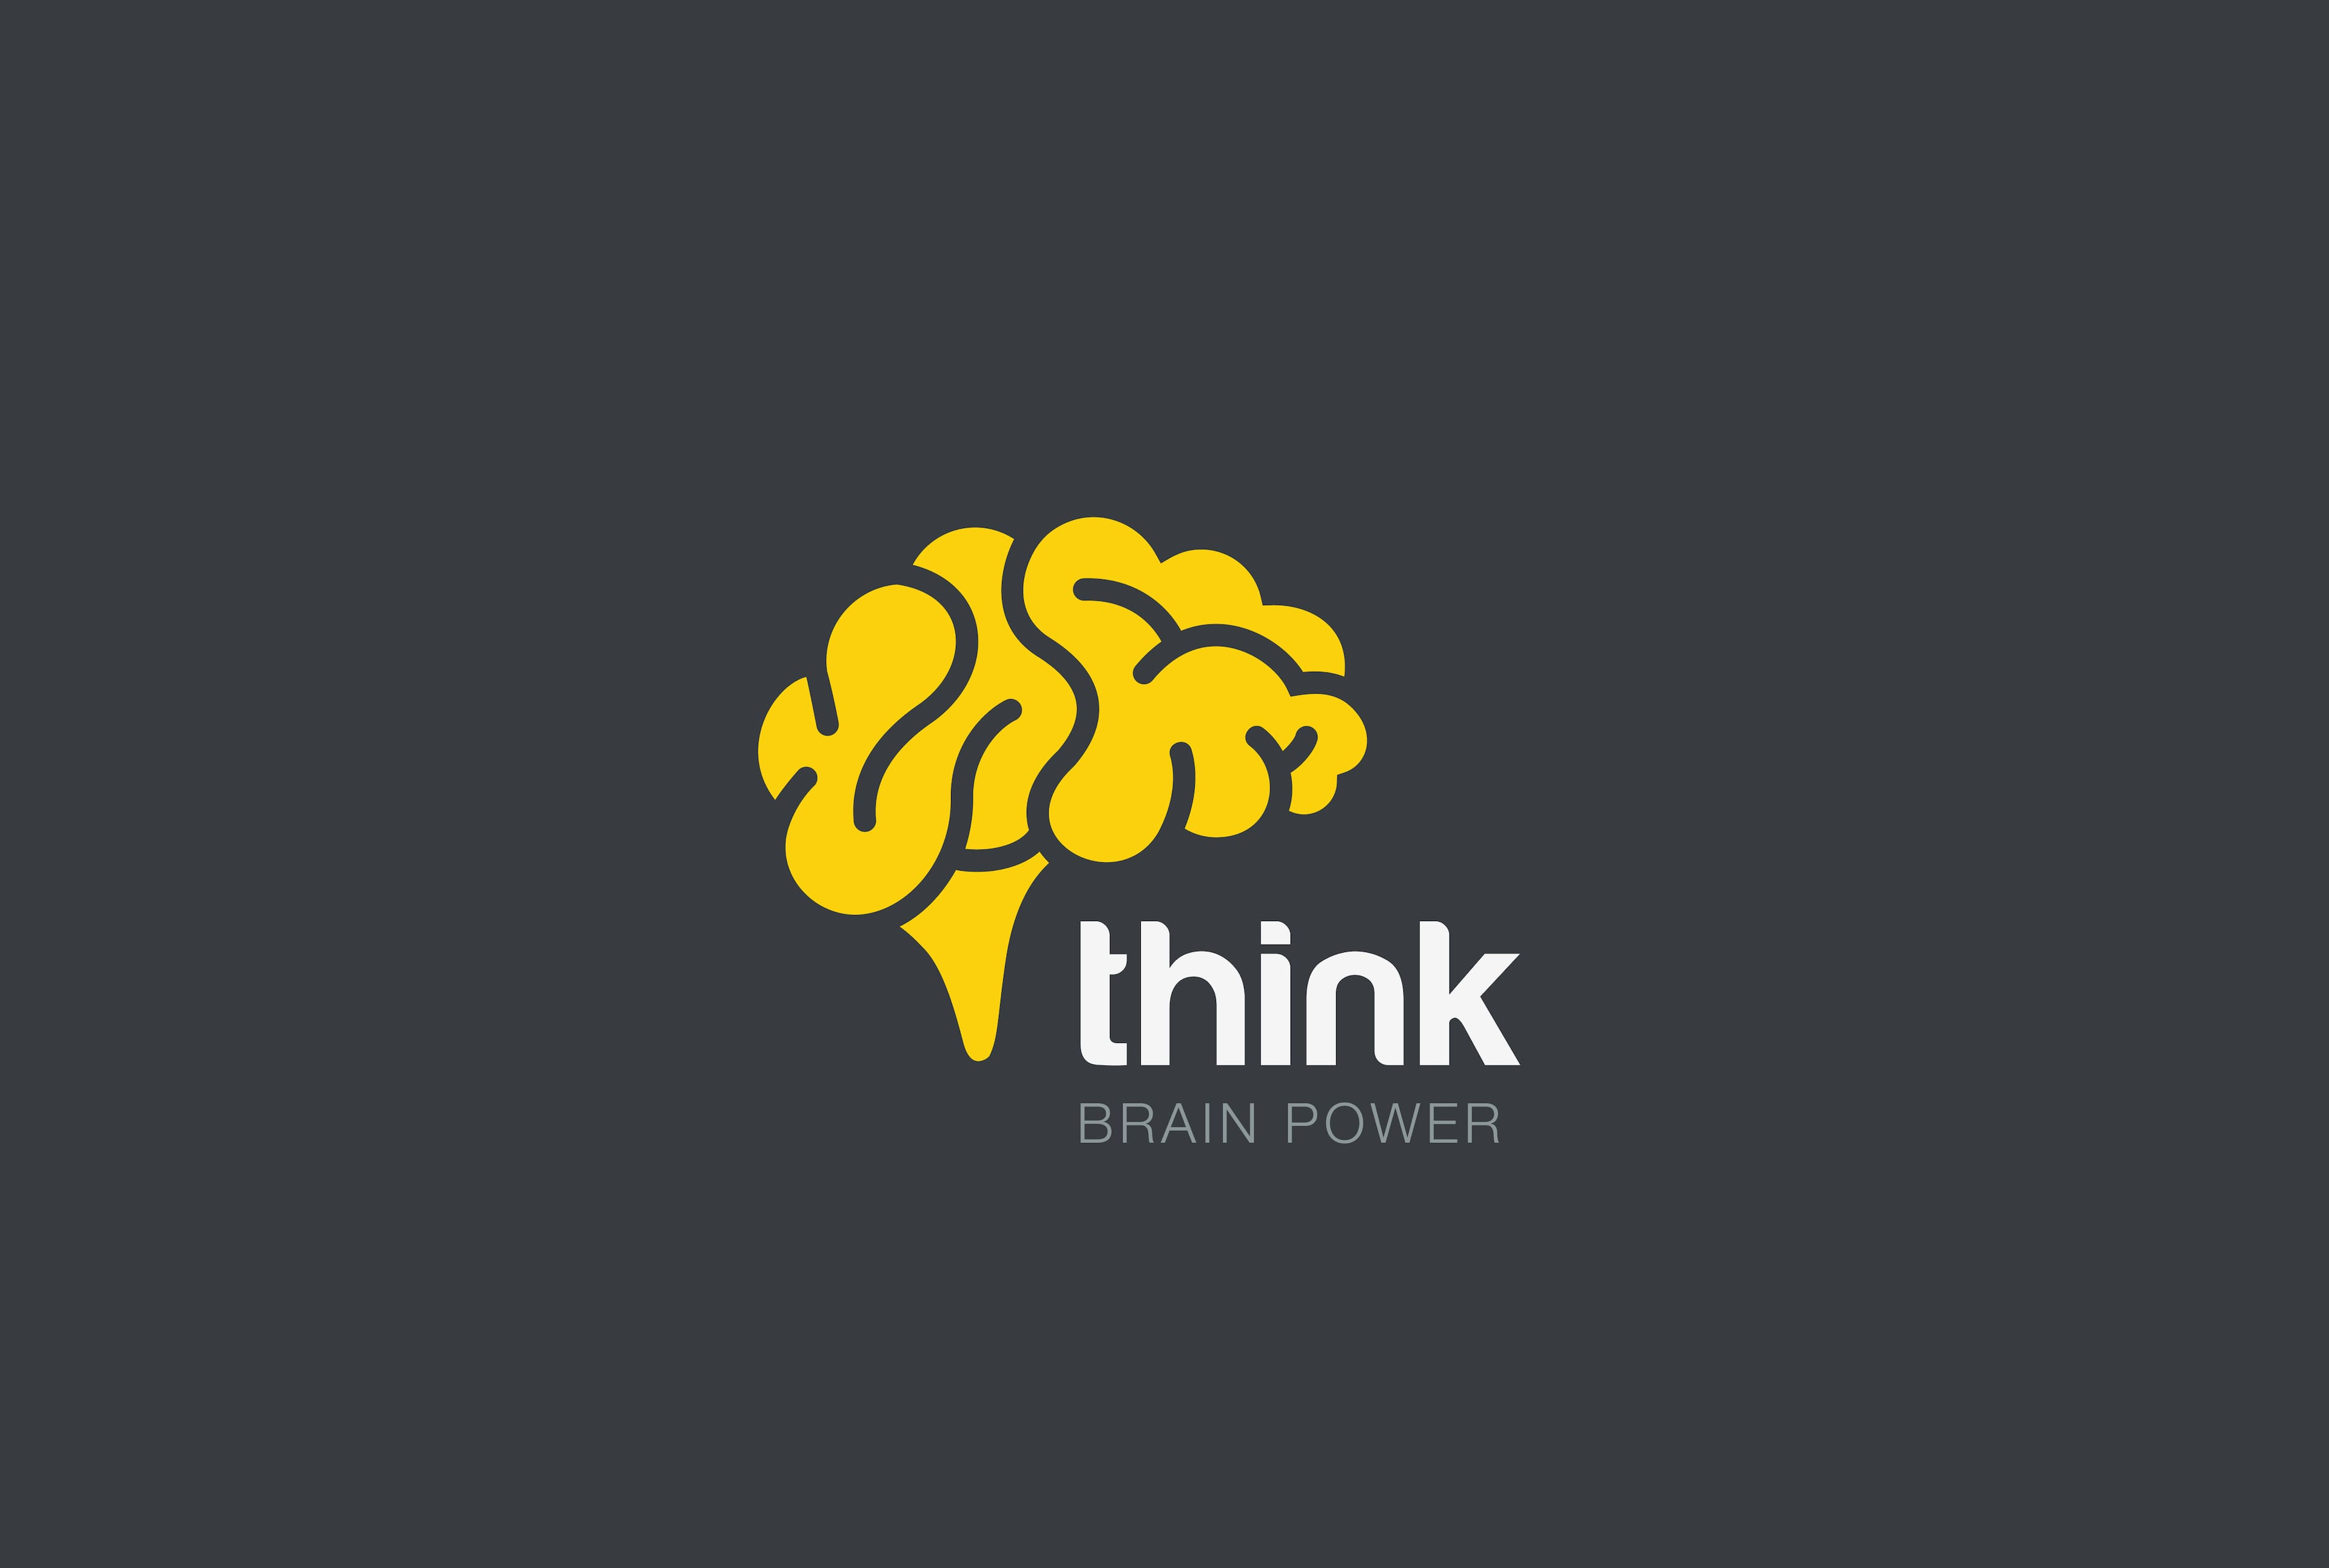 Definitive guide to designing a logo - How to use creative lighting techniques as a design element ...